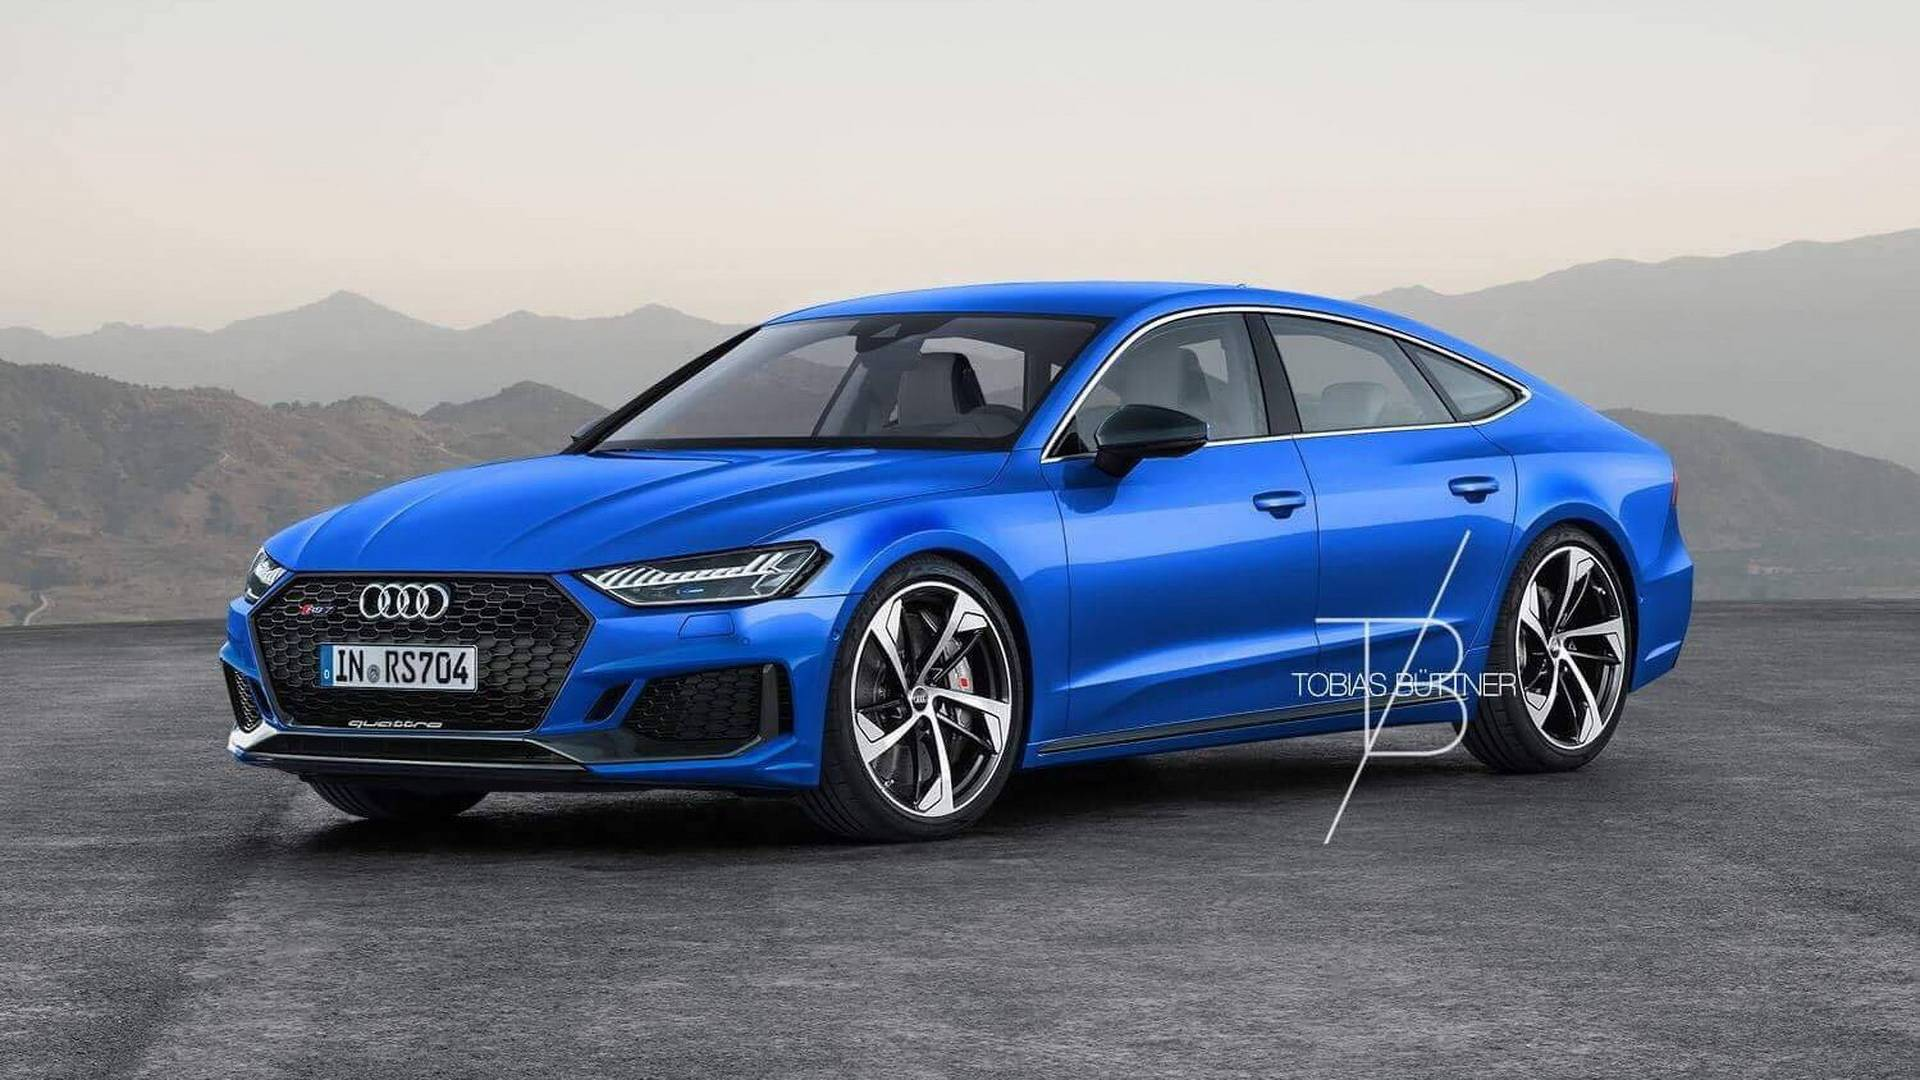 2020 Audi Rs7 Rendering Is Begging For 700 Hp Hybrid V8 Autoevolution